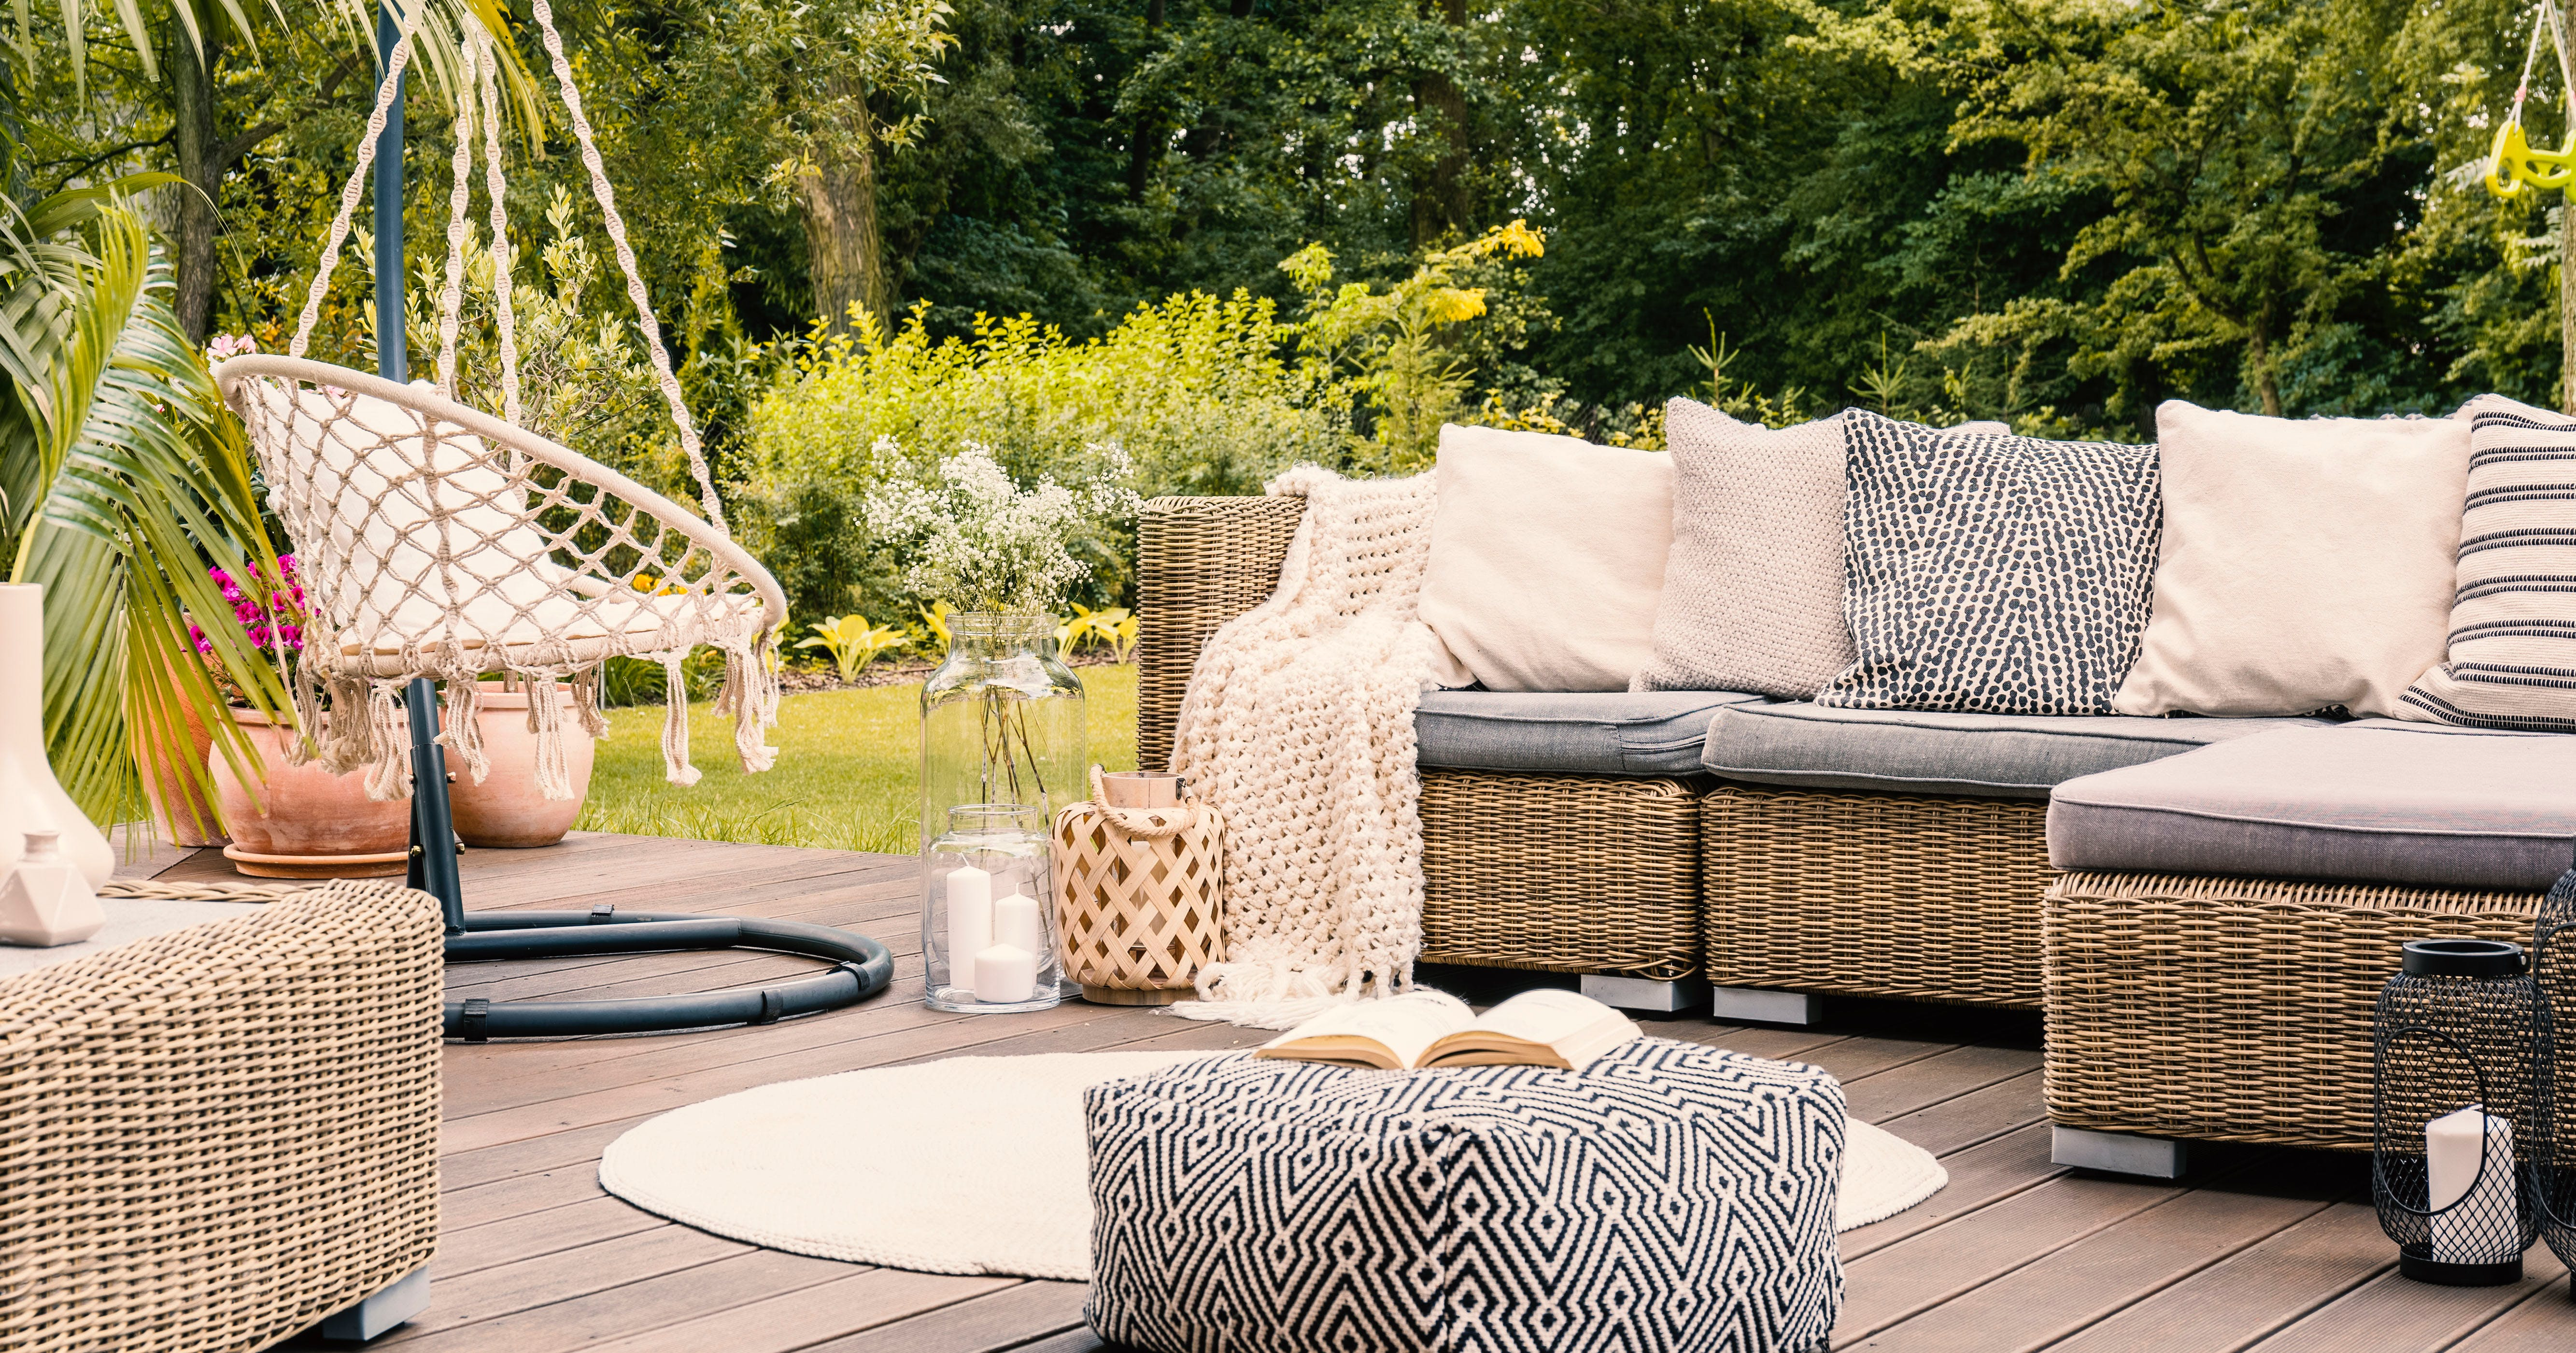 6 Backyard Trends That Will Be Huge This Summer